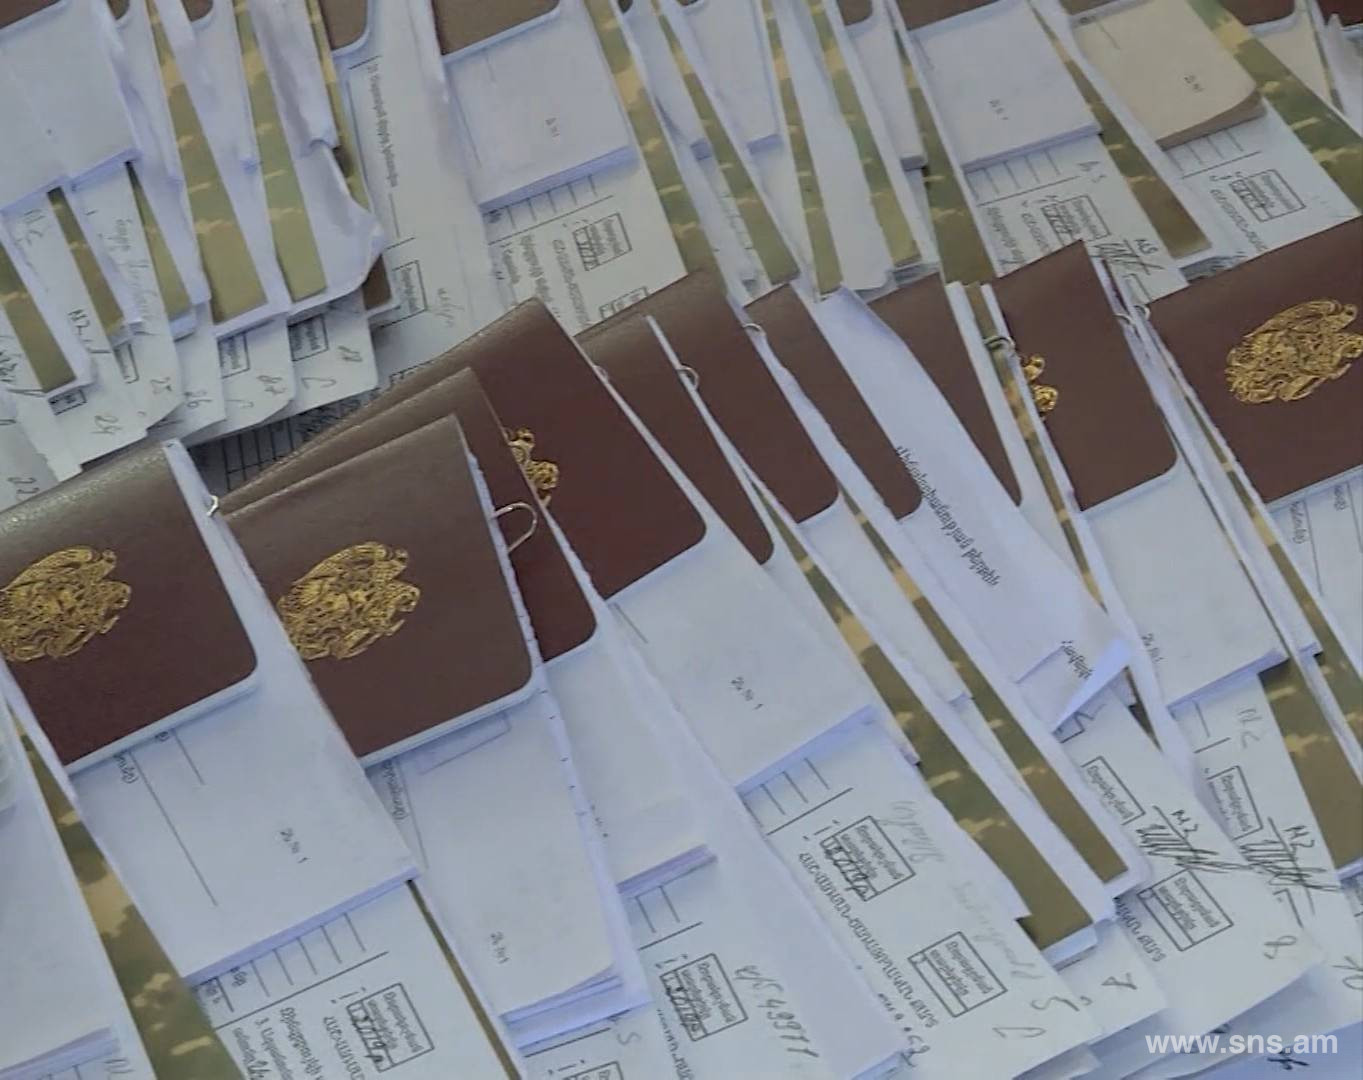 Cases of Receiving Deferment of Fixed-Term Military Service and Premature Demobilization, With False Medical Documents, in Exchange for Bribe, Detected